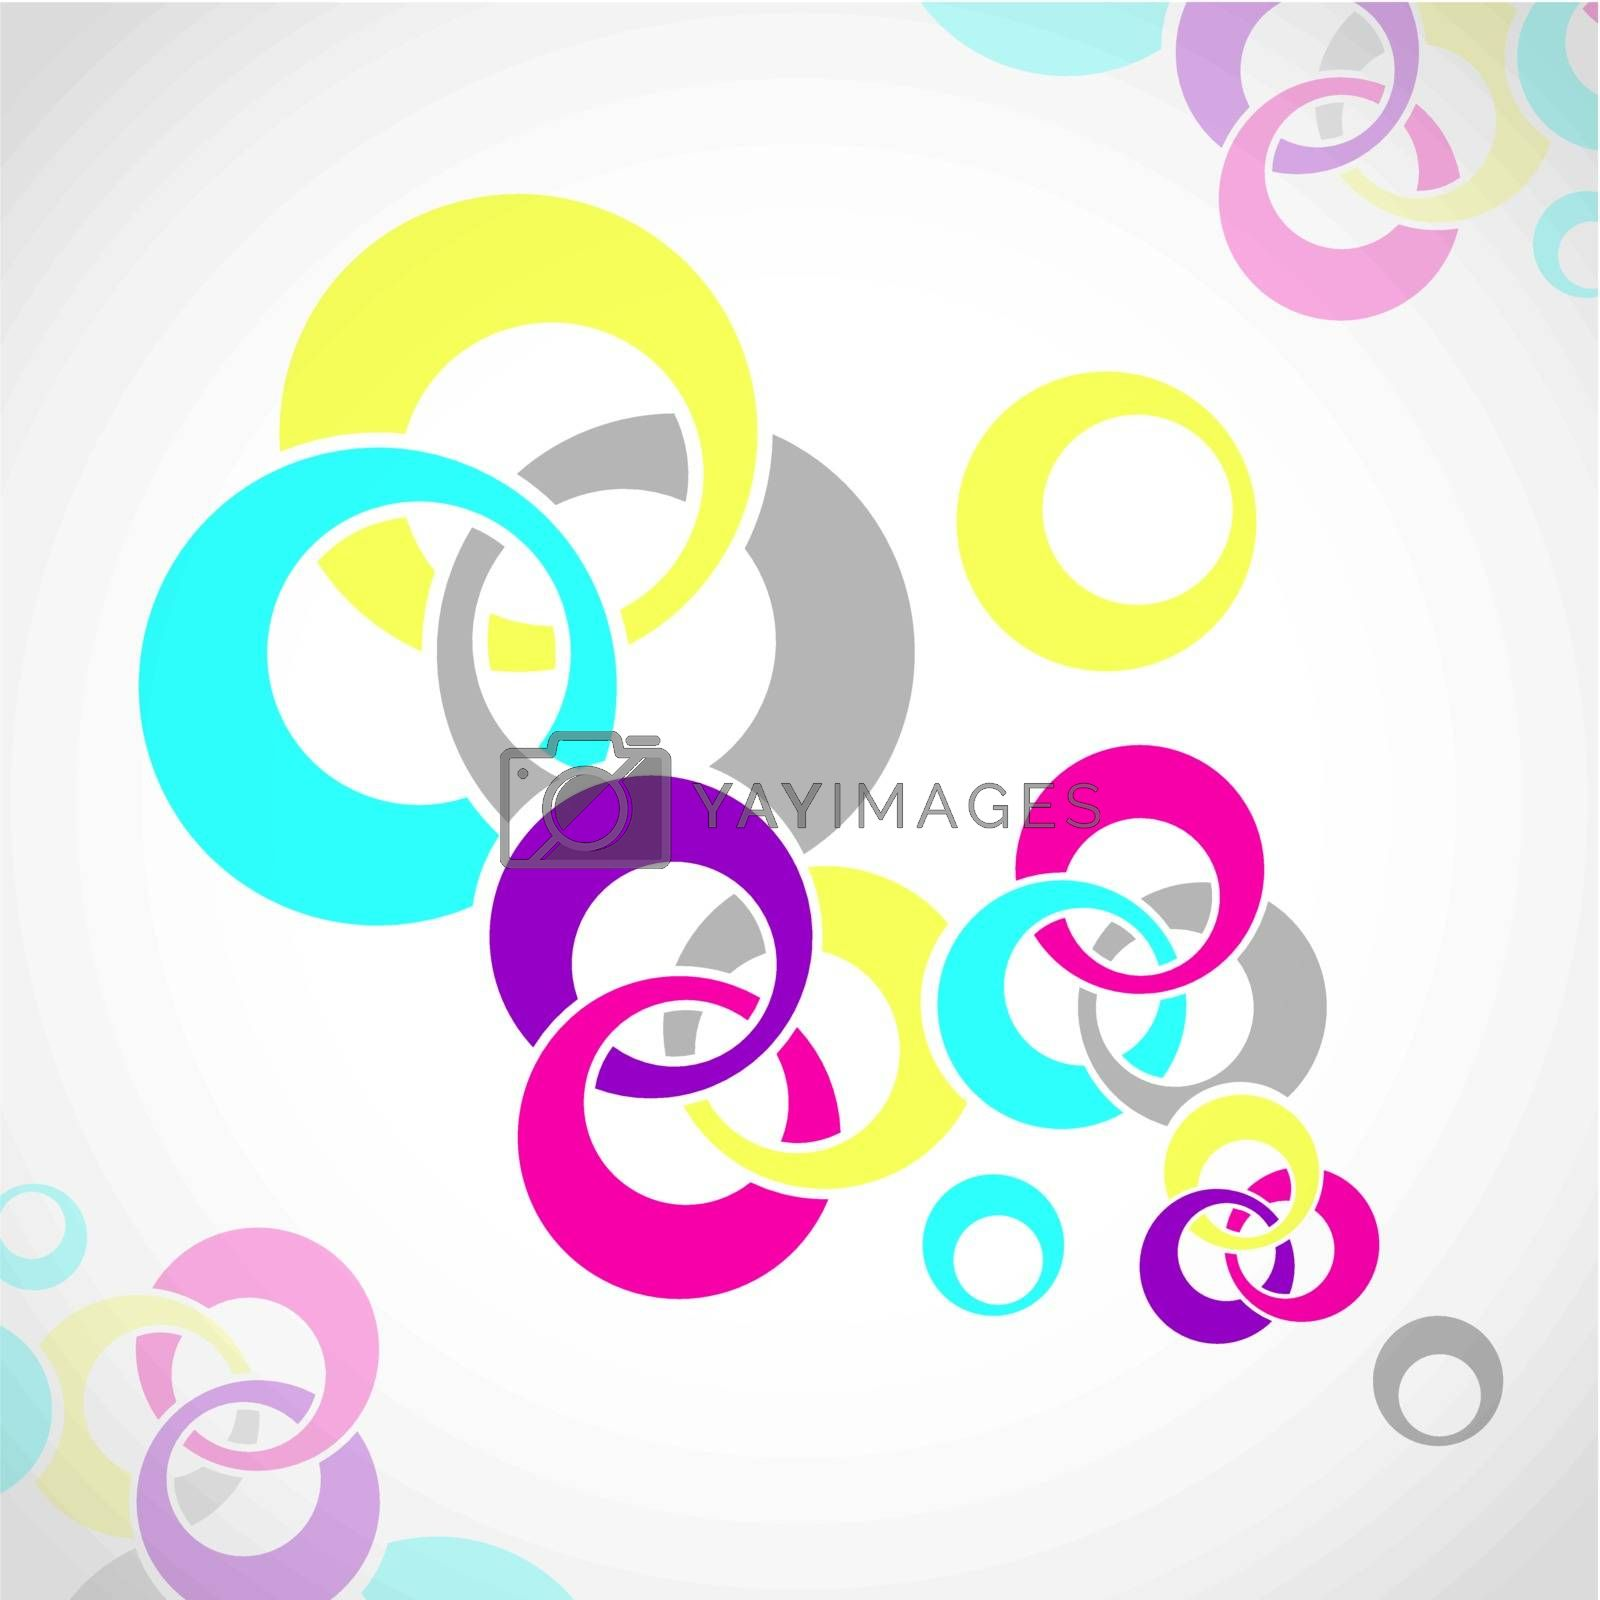 Illustration of Abstract Colorful Background With Round Shapes